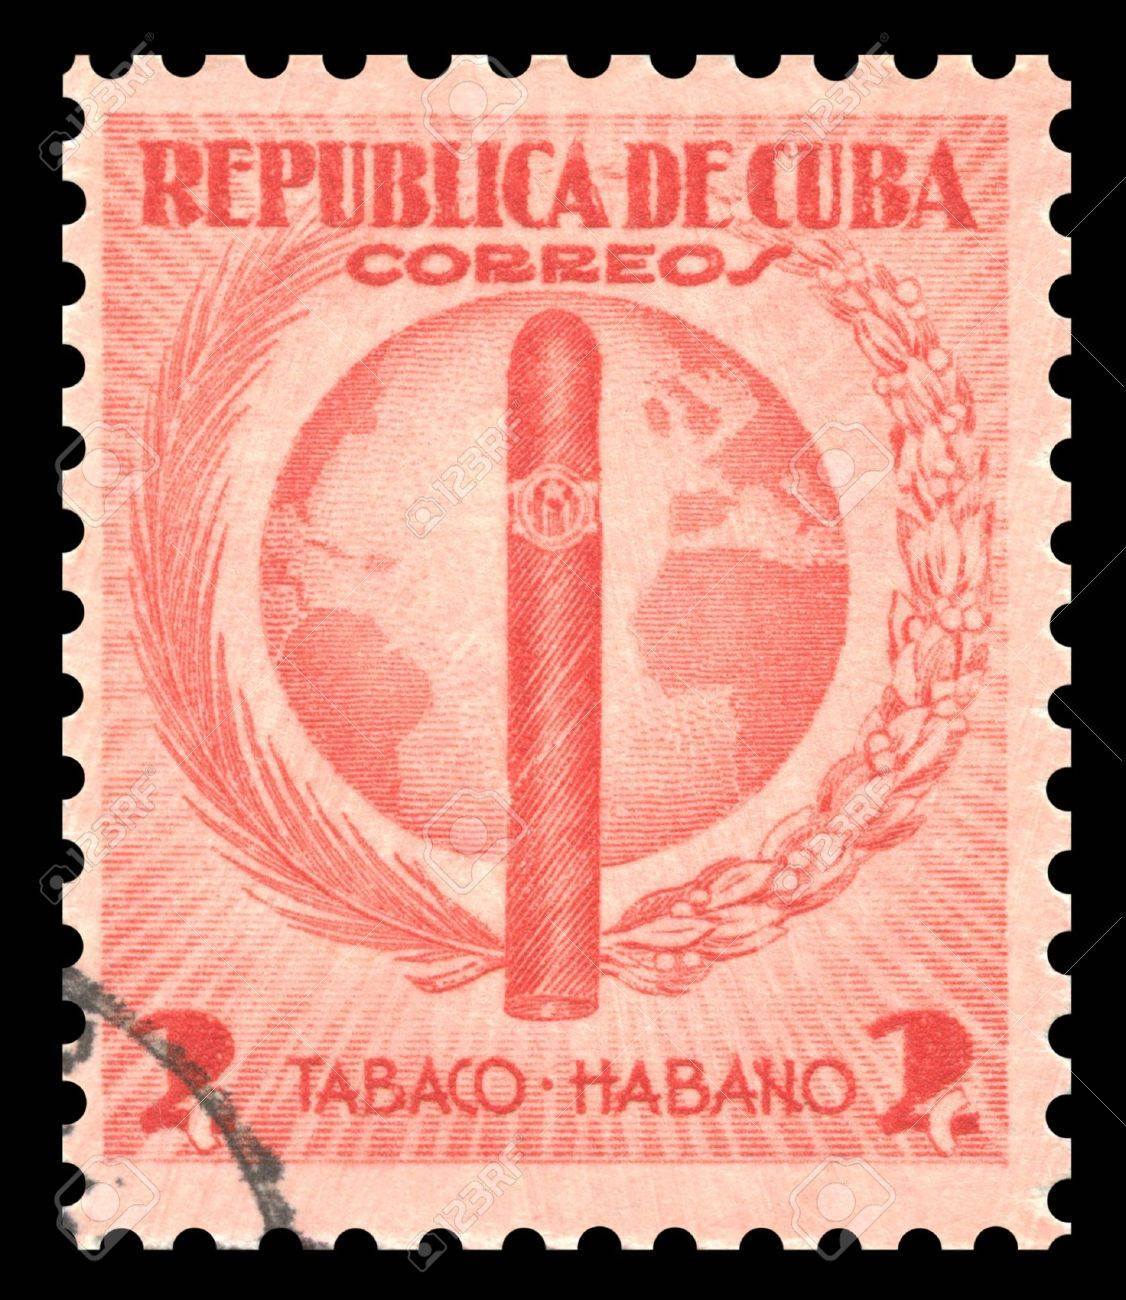 Vintage red Cuba postage stamp with an engraved image of an Havana